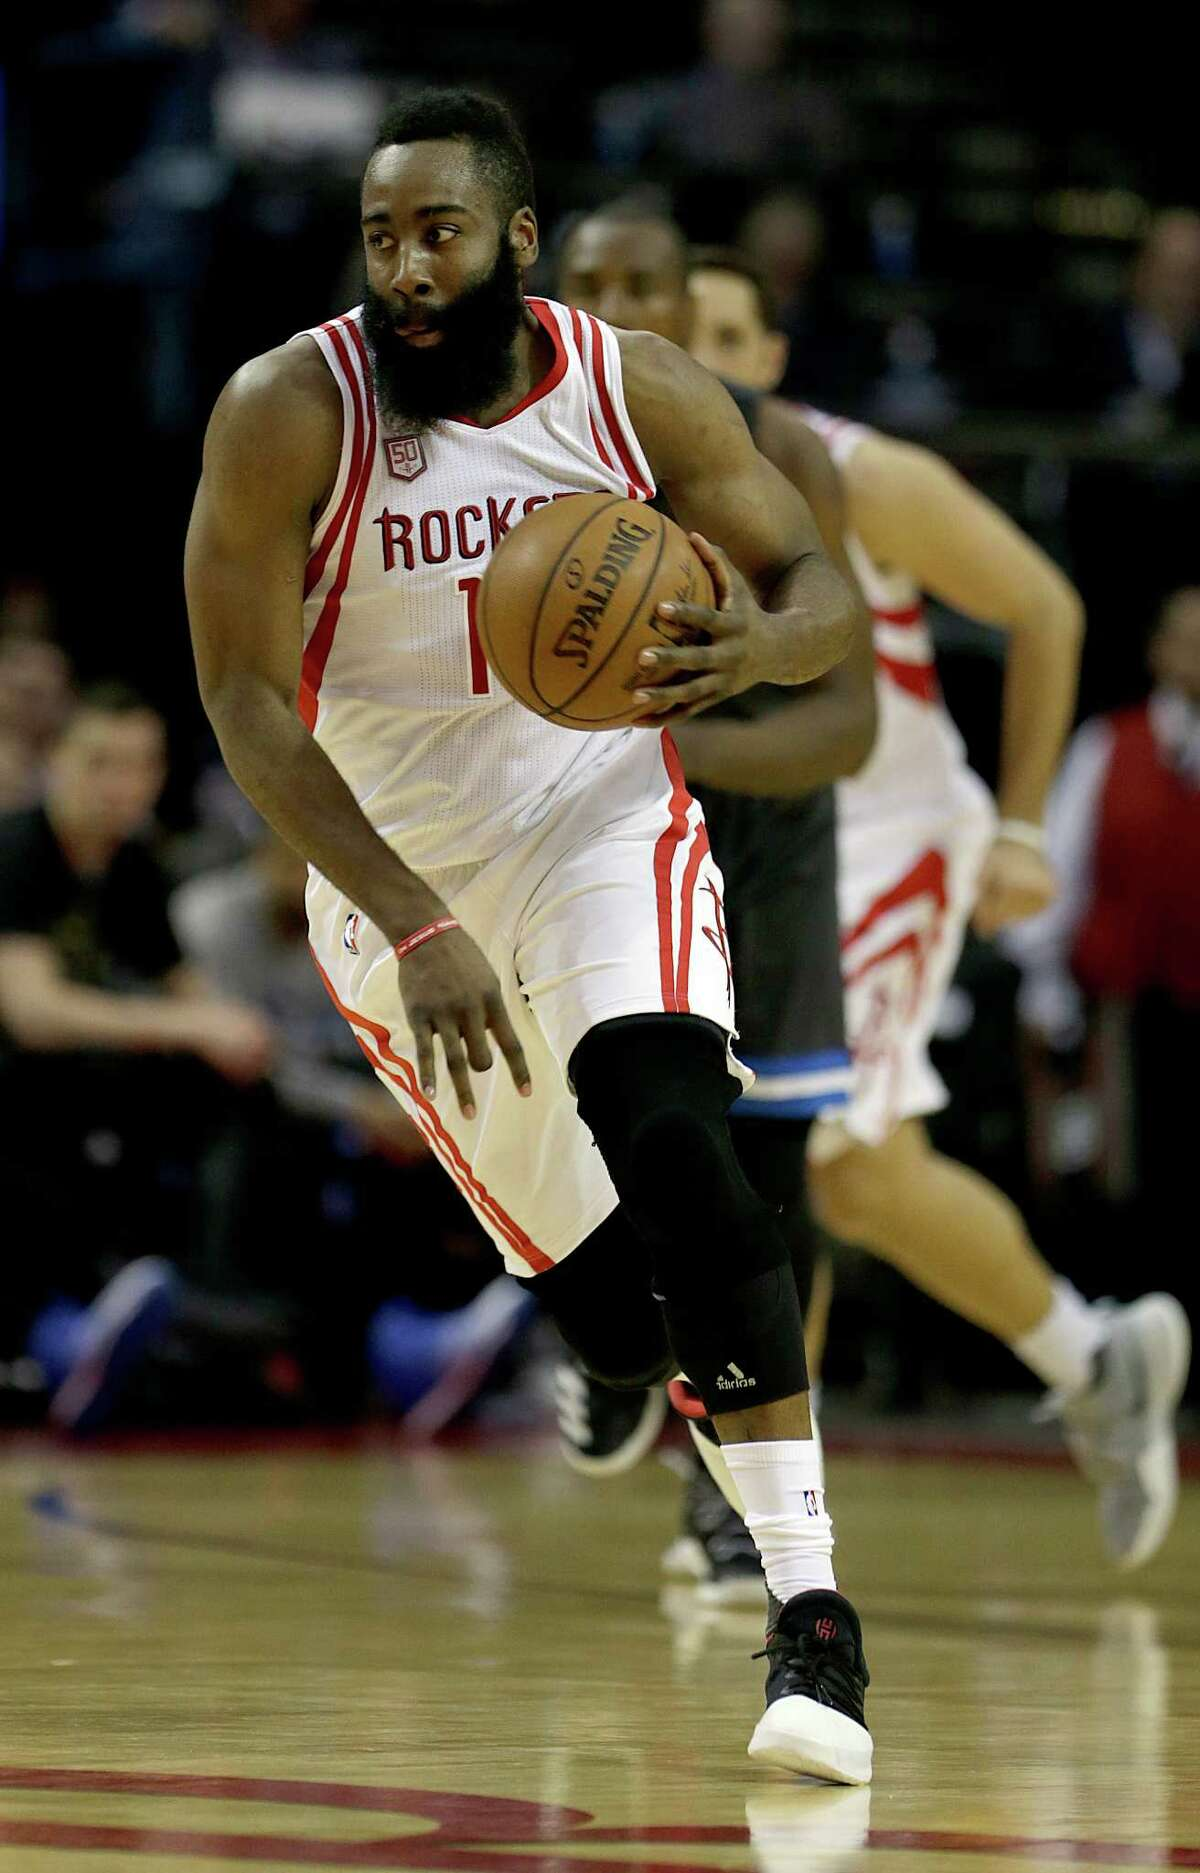 Houston Rockets guard James Harden drives with the ball against the Orlando Magic during first half of NBA game action at Toyota Center Tuesday, Feb. 7, 2017, in Houston.